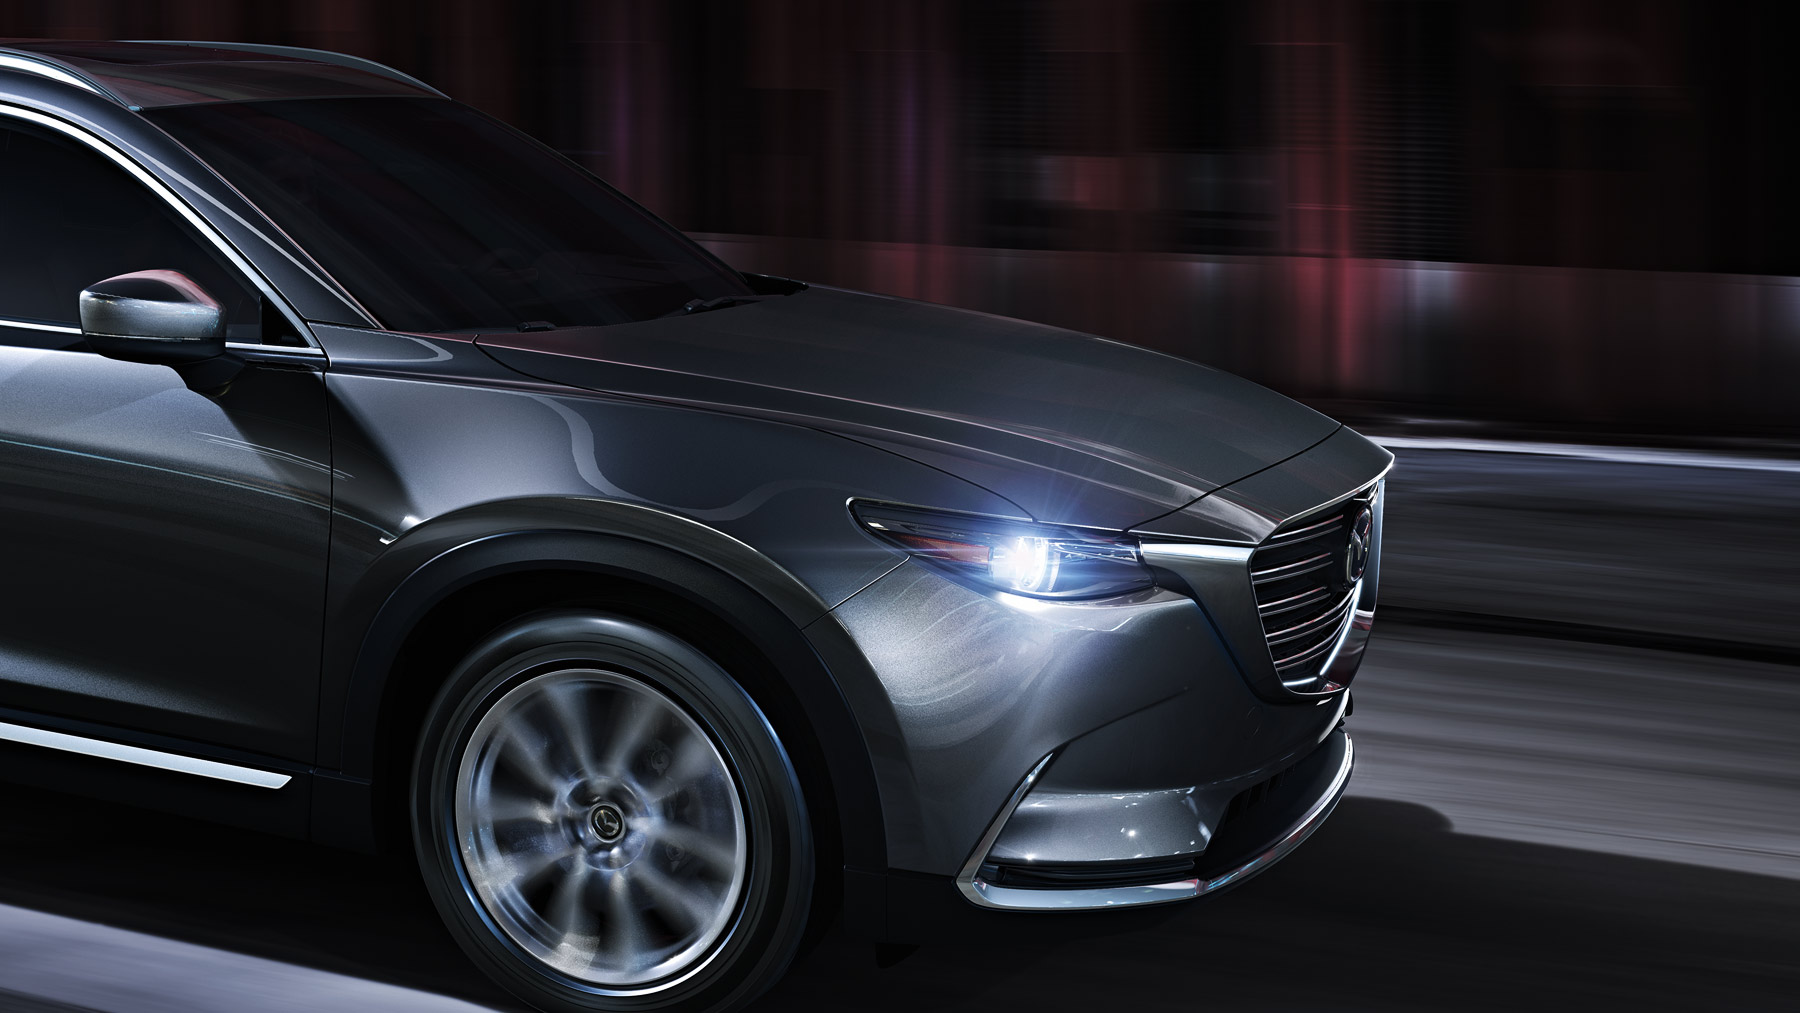 2017 mazda cx 9 3 row suv pictures videos mazda usa. Black Bedroom Furniture Sets. Home Design Ideas